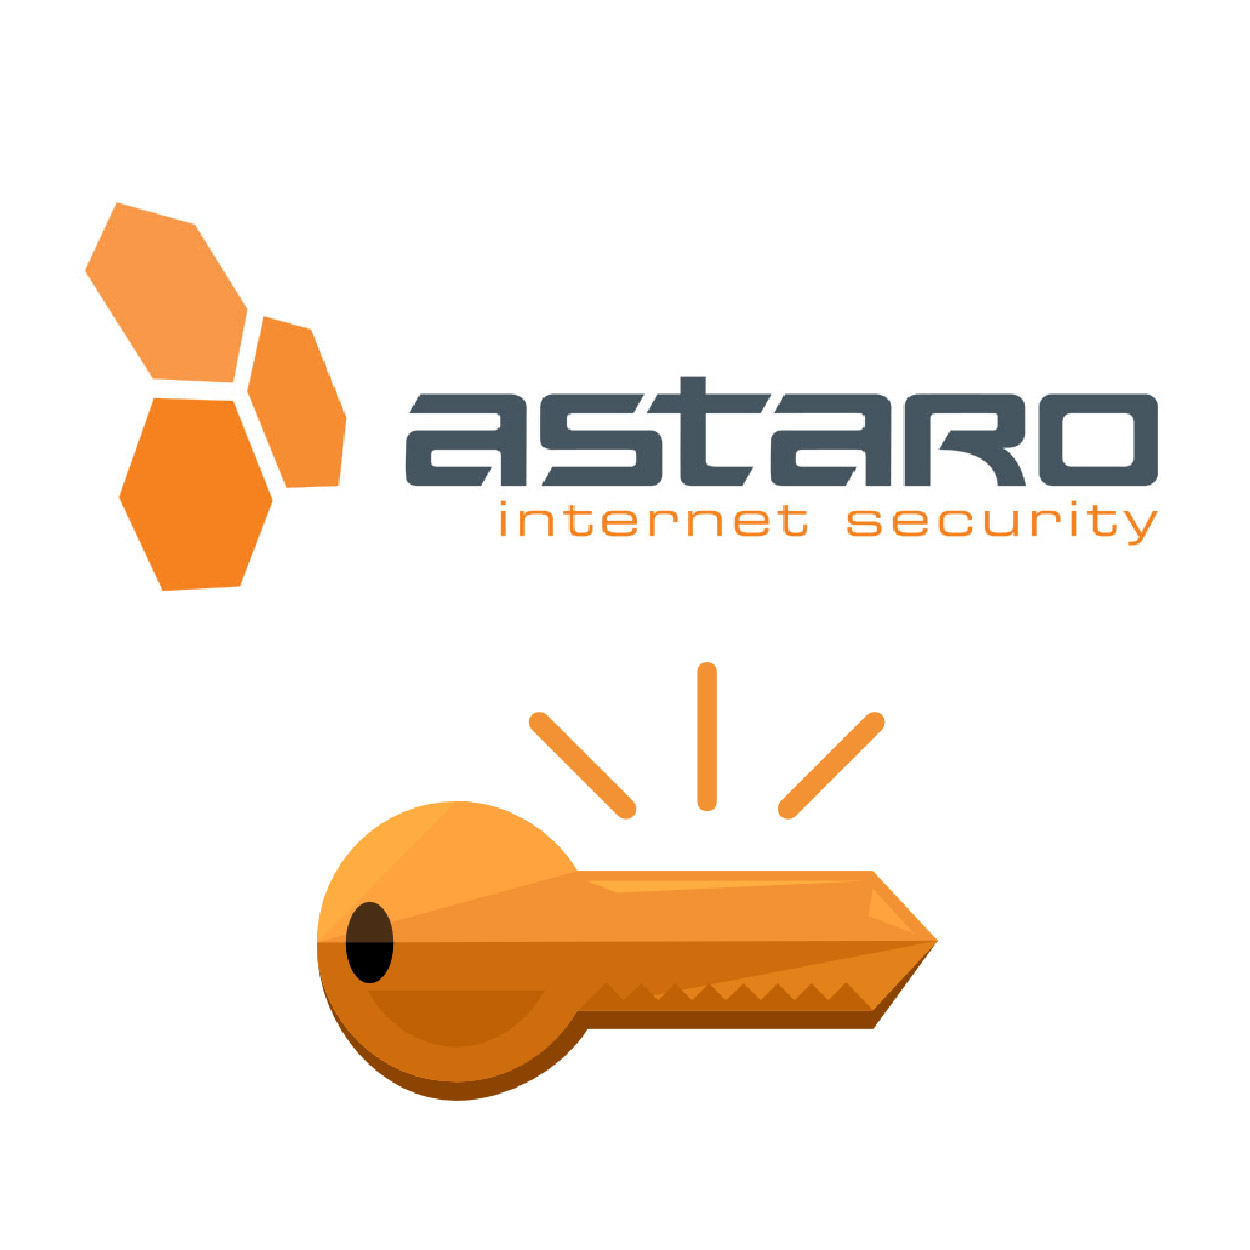 Astaro - Subscription Activation code for AMG 2000 with 1 Yr Mail  Including 1 Yr Gold Support ,Firewall